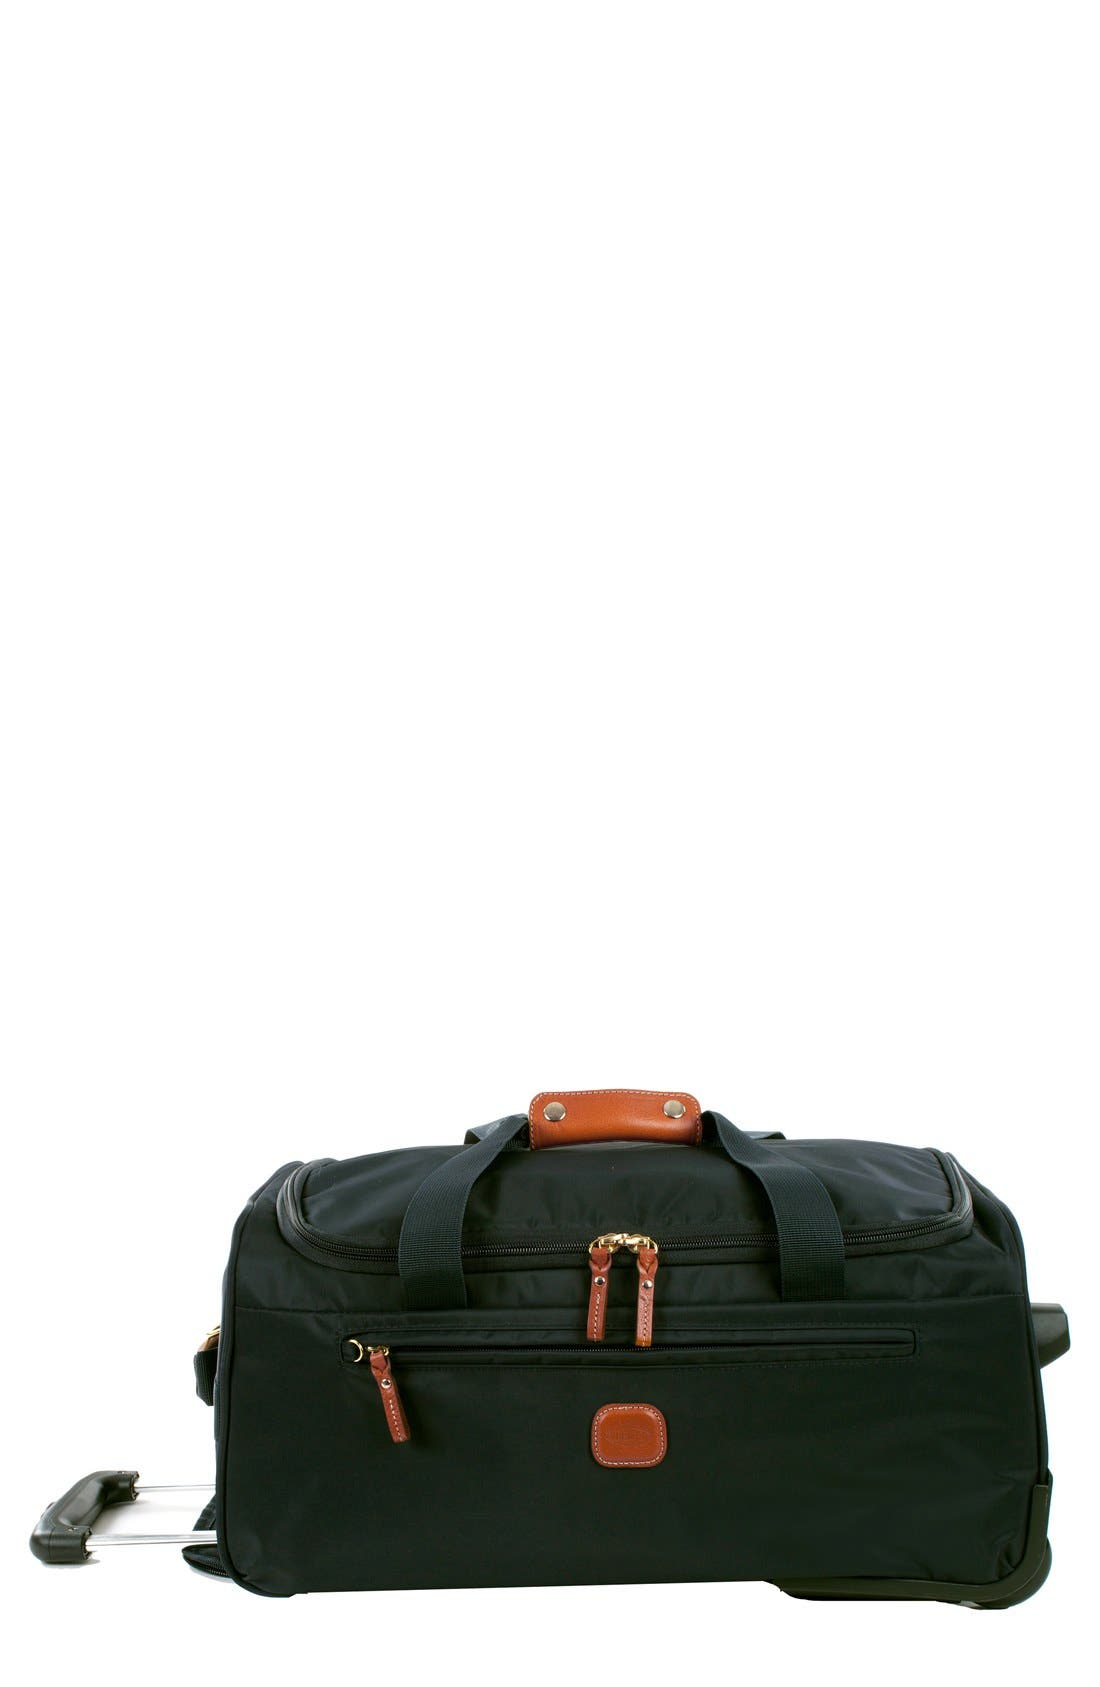 BRICS X-Bag Carry-On Rolling Duffel Bag